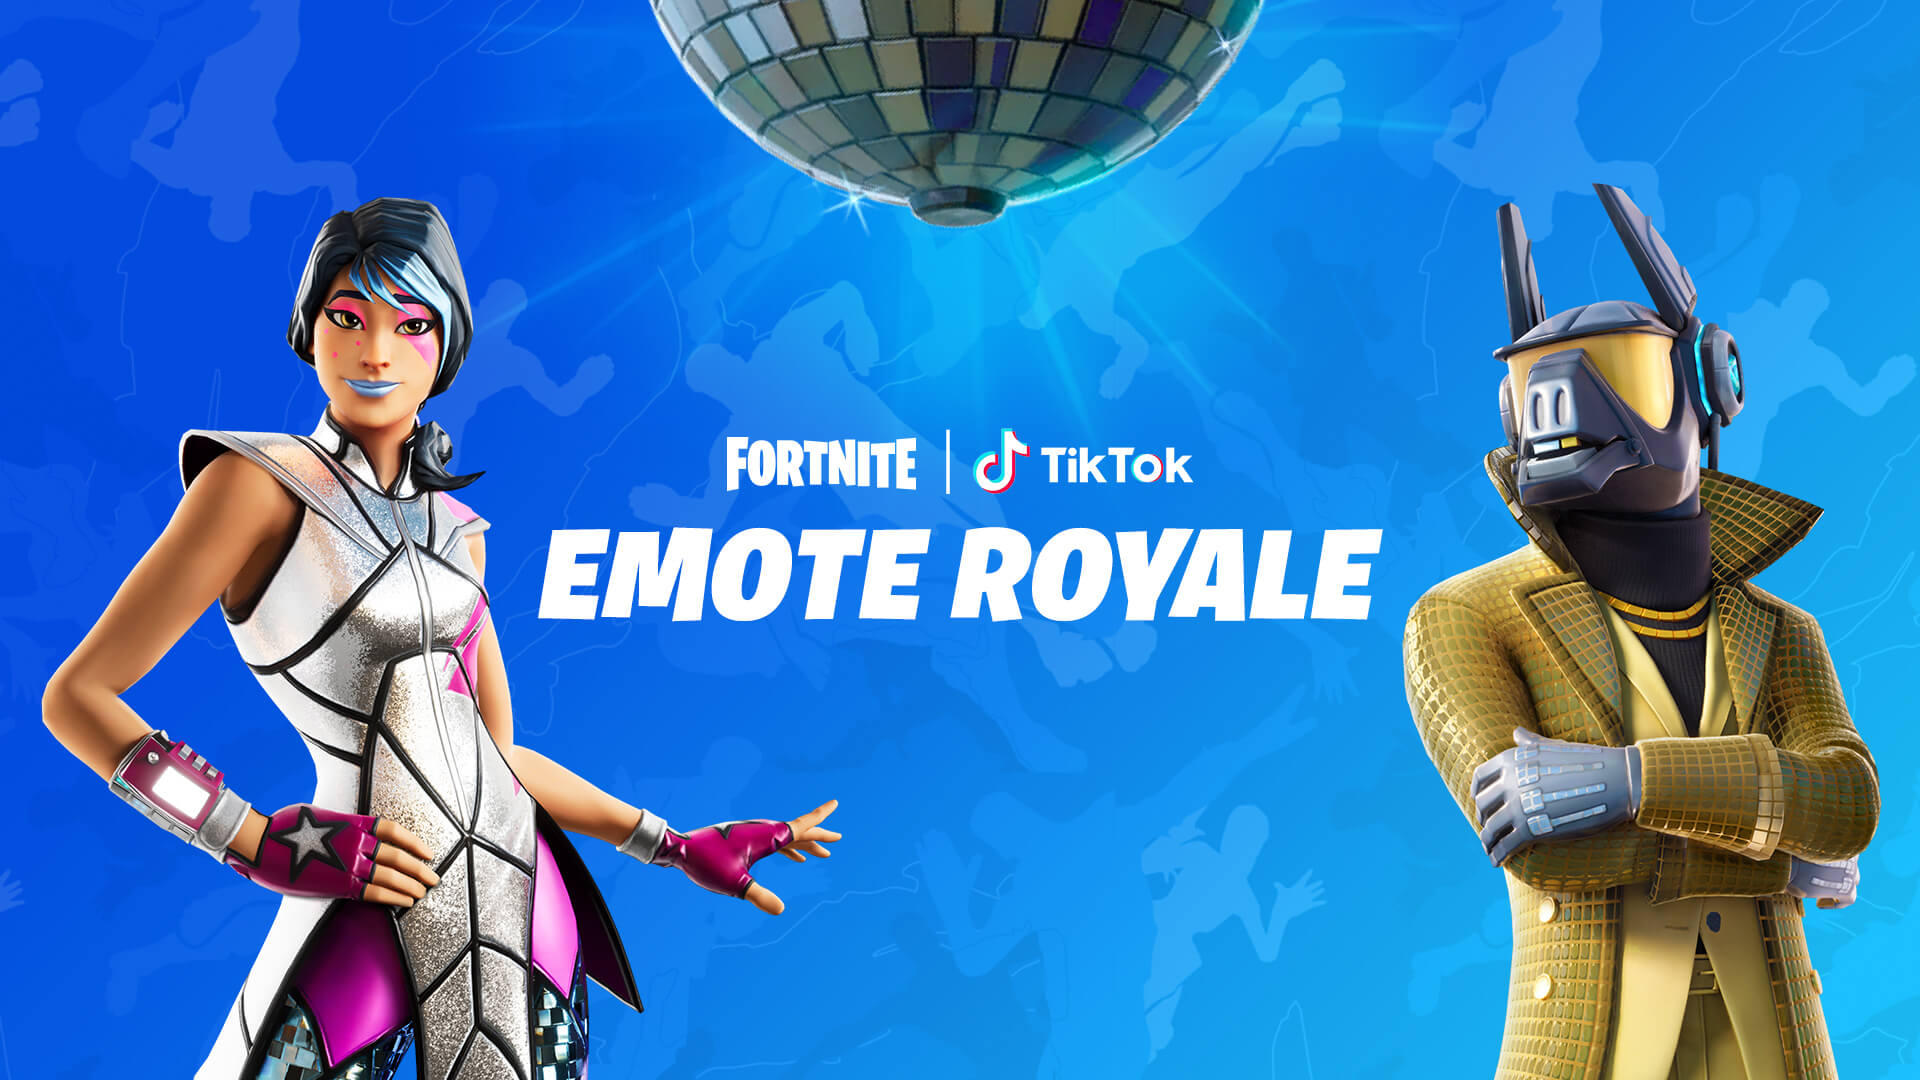 Fortnite X Tik Tok Dance Challenge Allows Users To Submit Their Own Emotes Contest Ends January 24 Gameranx